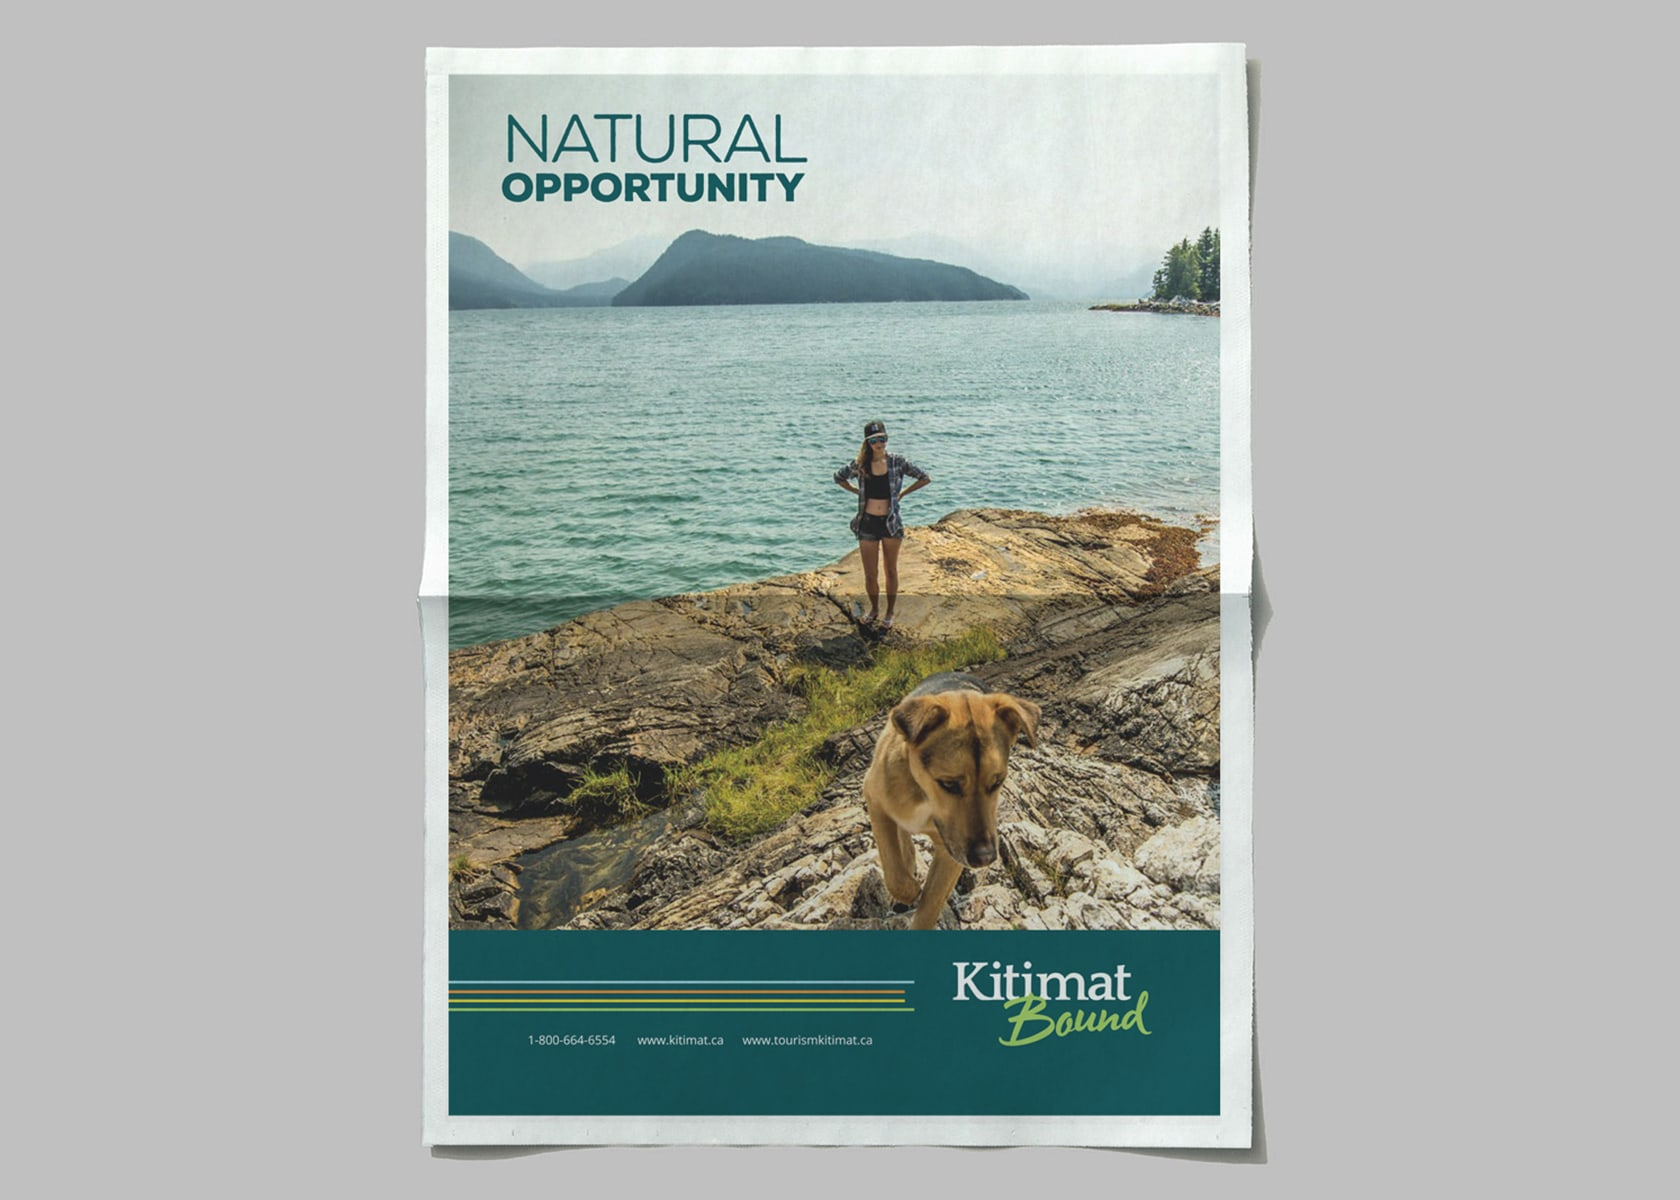 District of Kitimat - Kitimat Bound full size ad